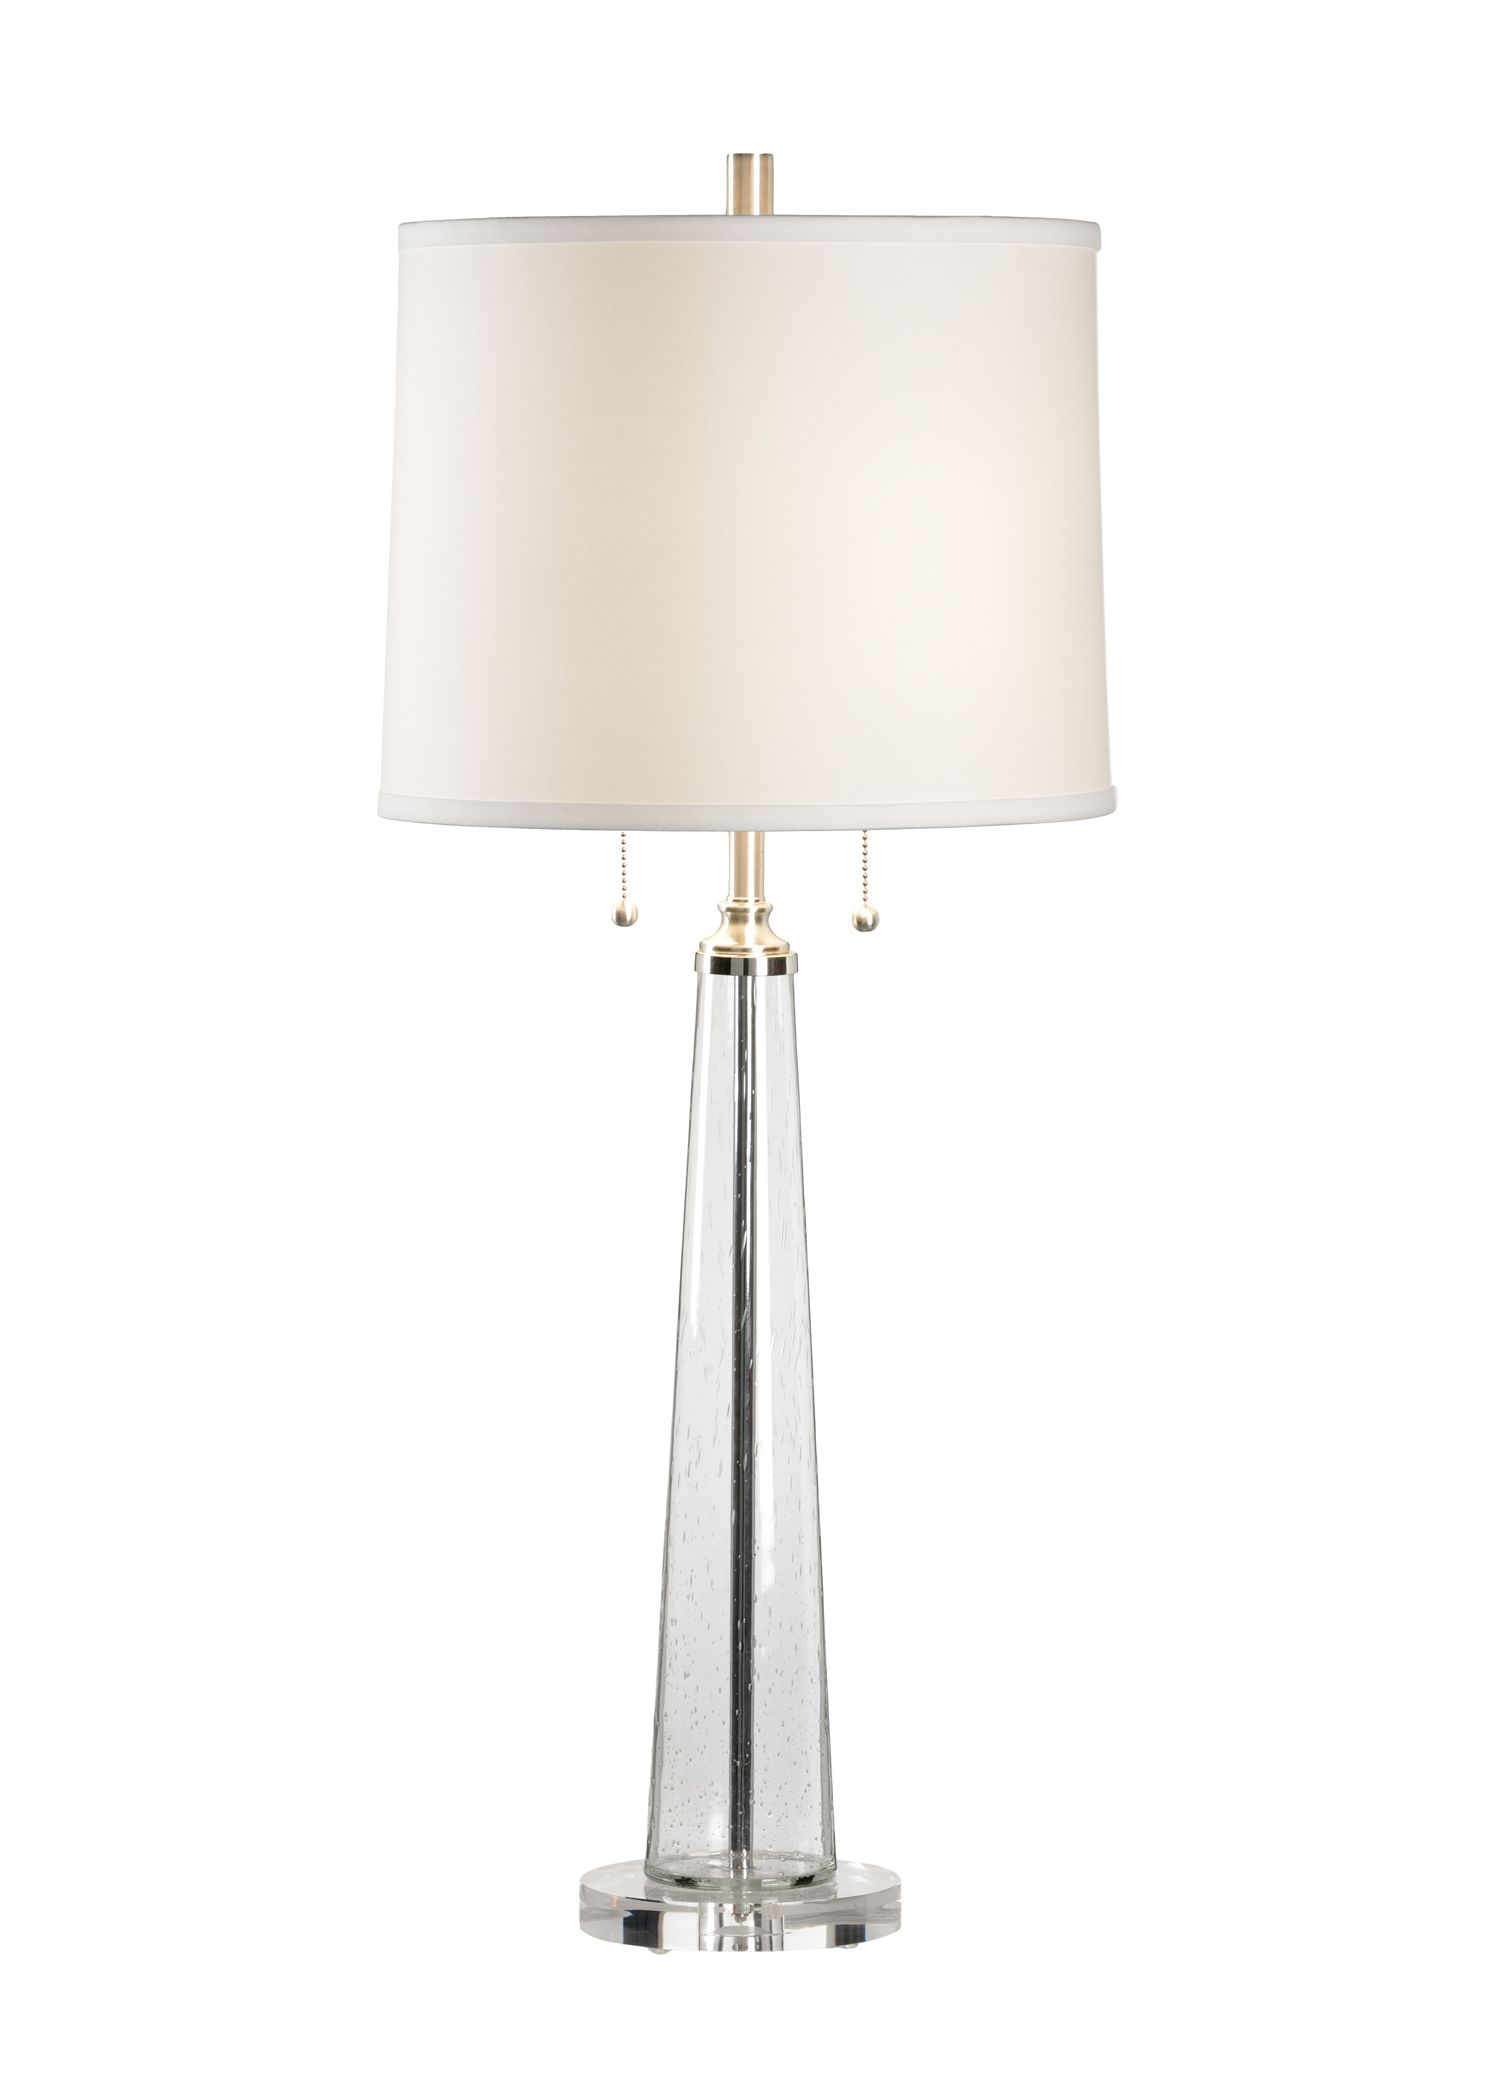 Chelsea House Lamp From Lisa Kahn Collection In Gl With Linen Shade Showroom